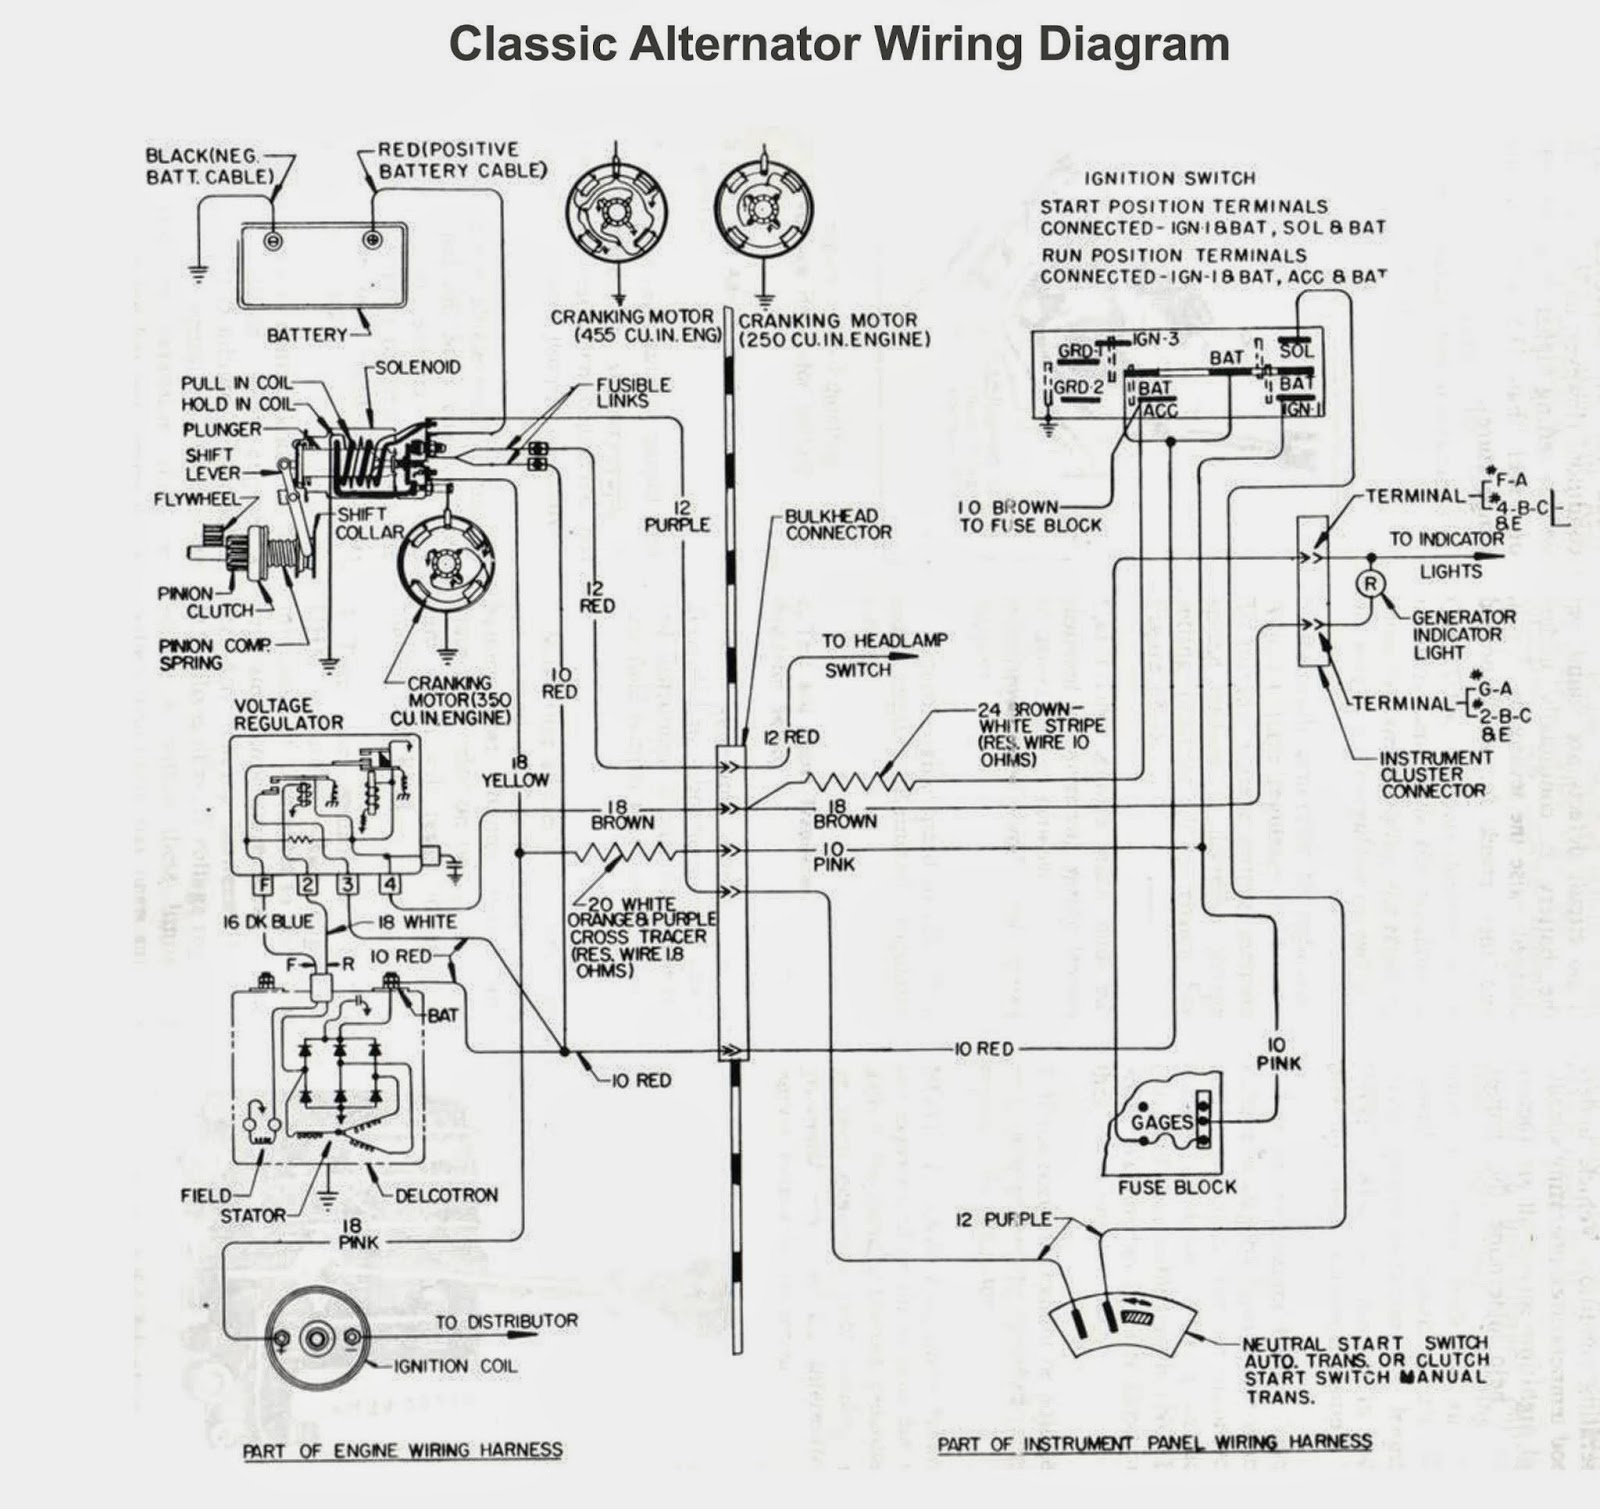 Untitled 1 july 2014 electrical winding wiring diagrams ford fiesta alternator wiring diagram at crackthecode.co